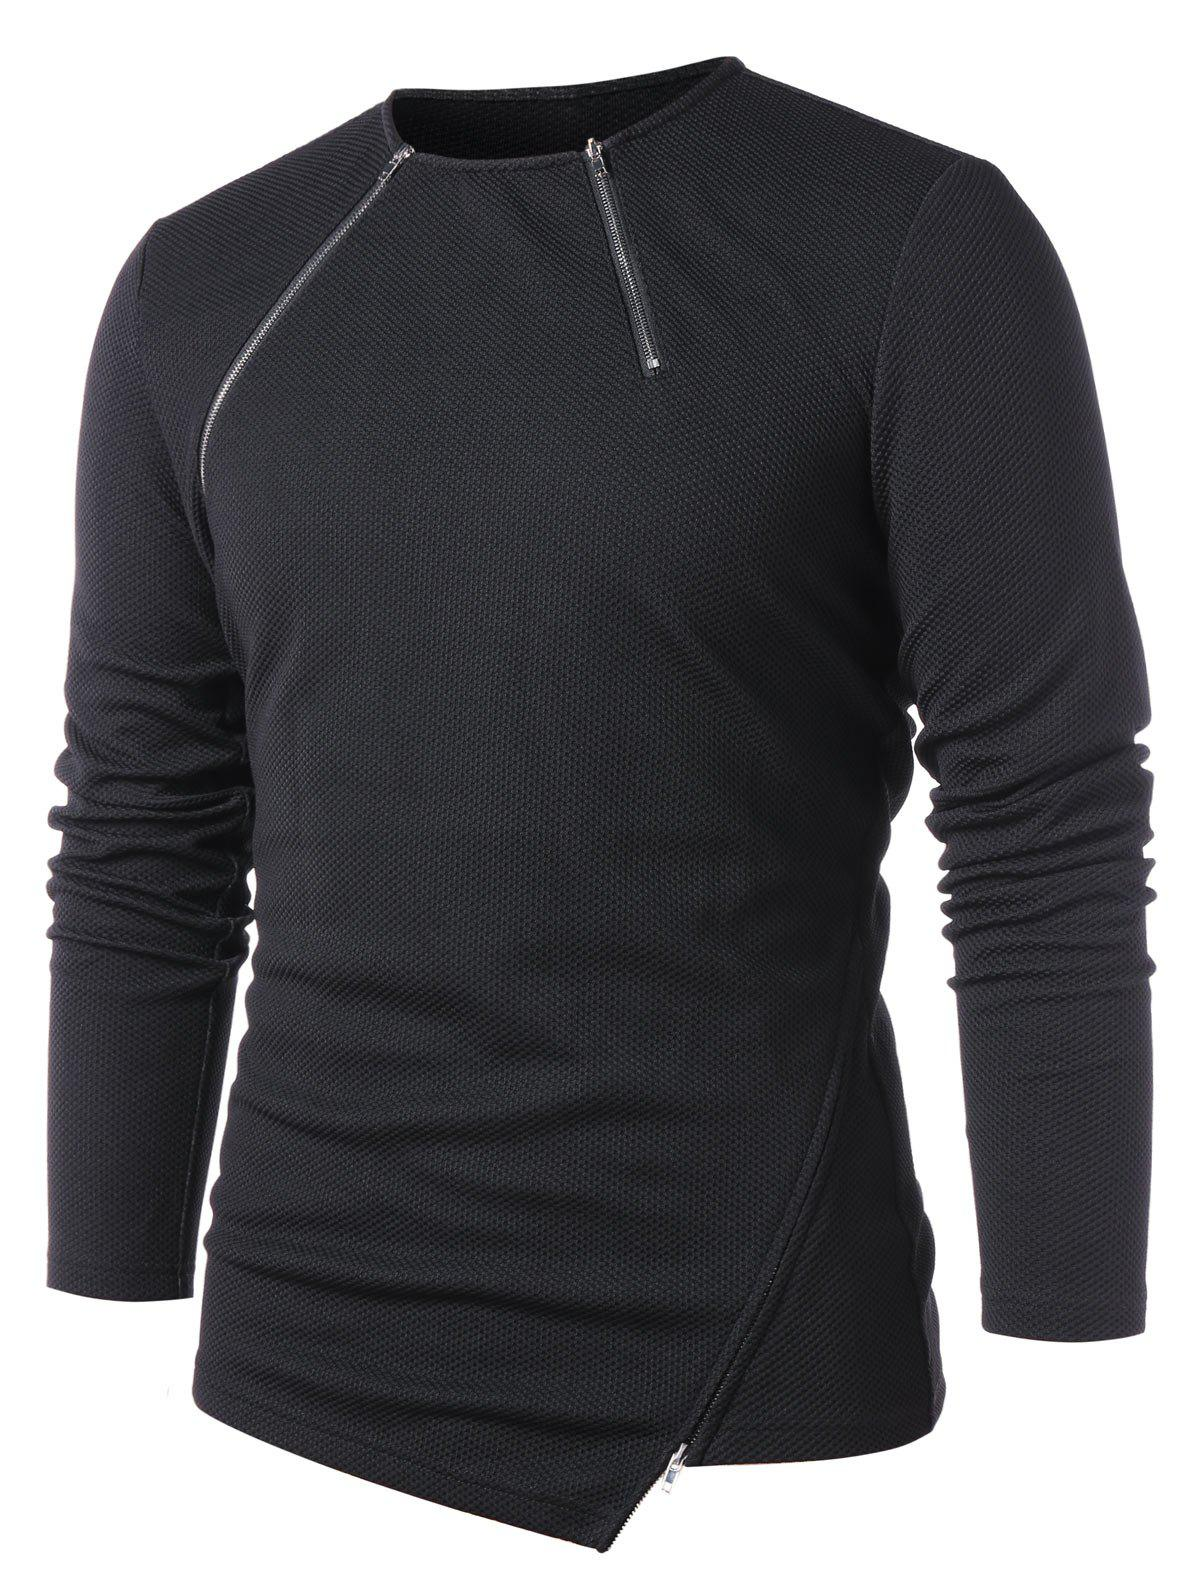 Asymmetric Round Neck Zip Hem T-shirt - BLACK 2XL